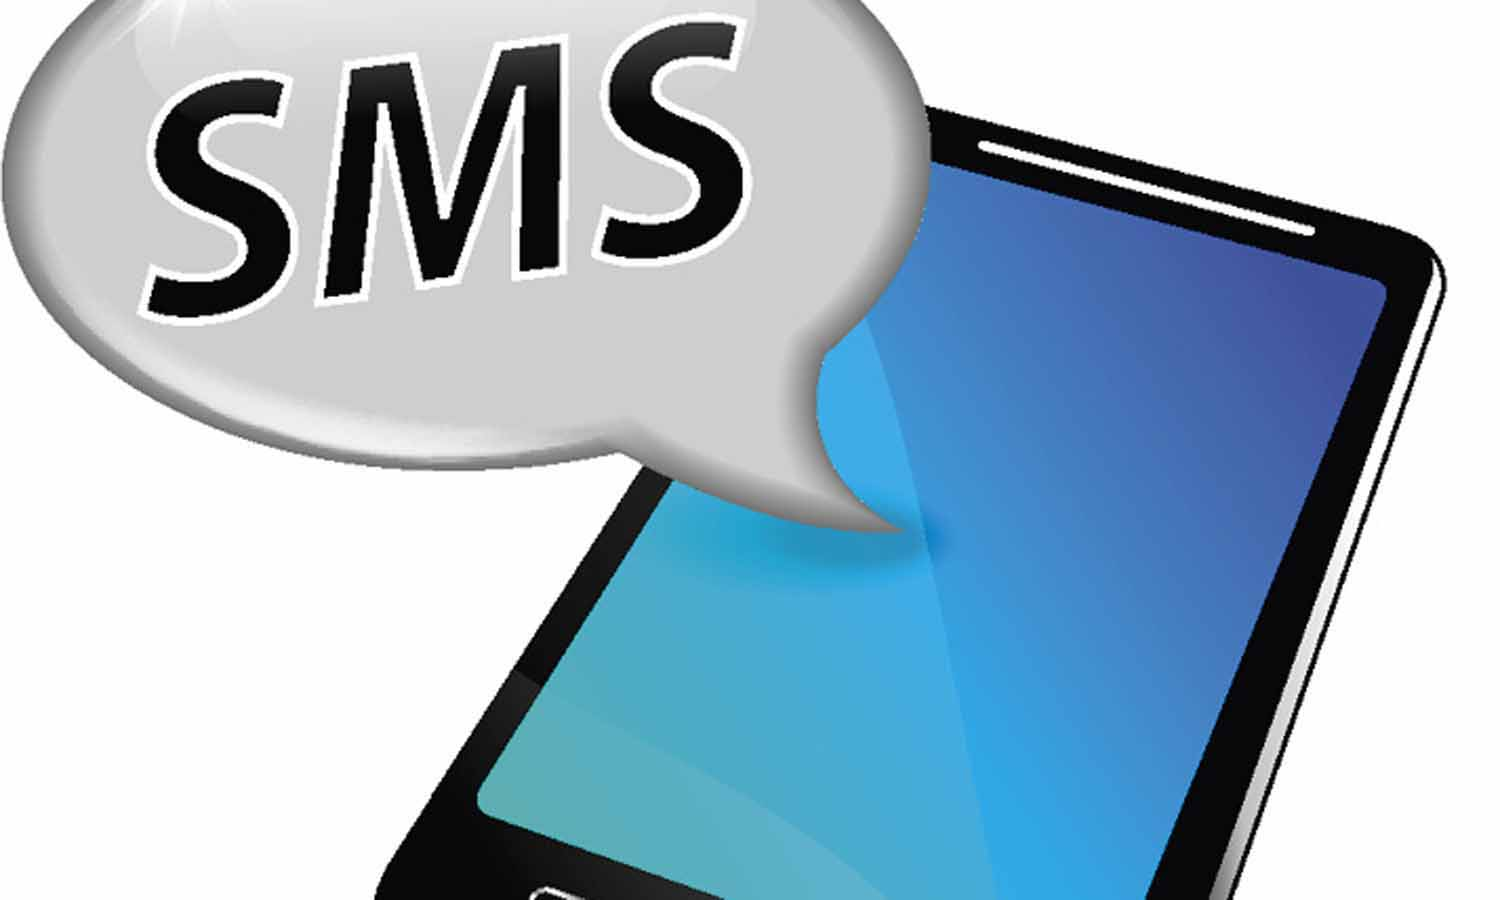 Le SMS, une communication imbattable